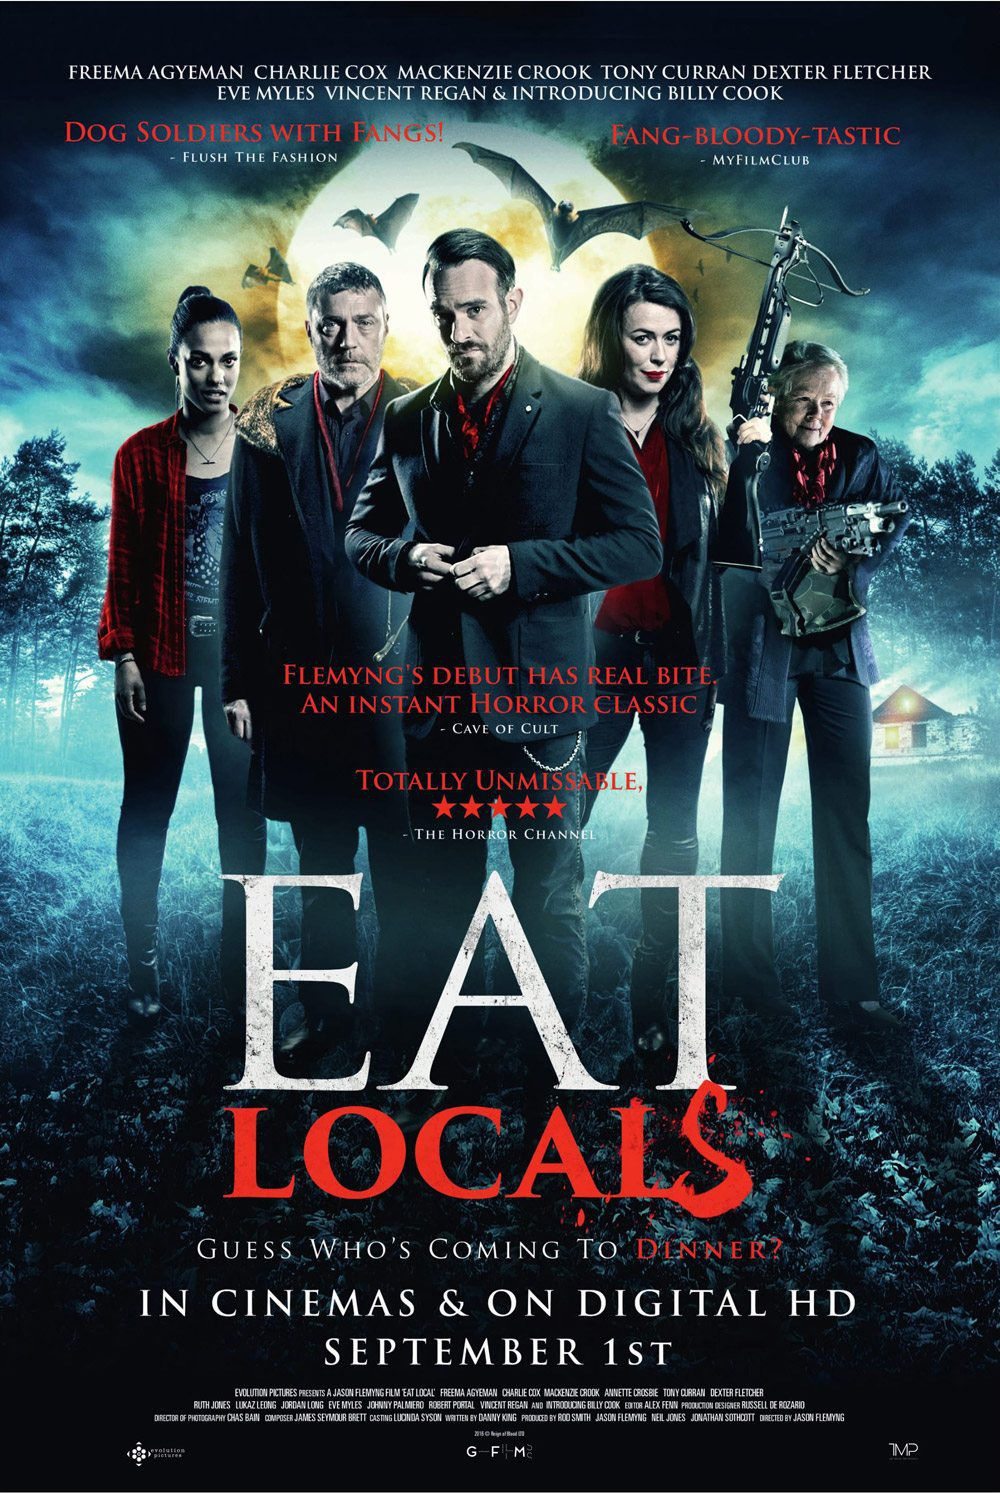 Eat Locals - Freema Agyeman - Charlie Cox - MacKenzie Crook - Tony Curran - Dexter Fletcher - Eve Myles - Vincent Regan - Billy Cook - film poster